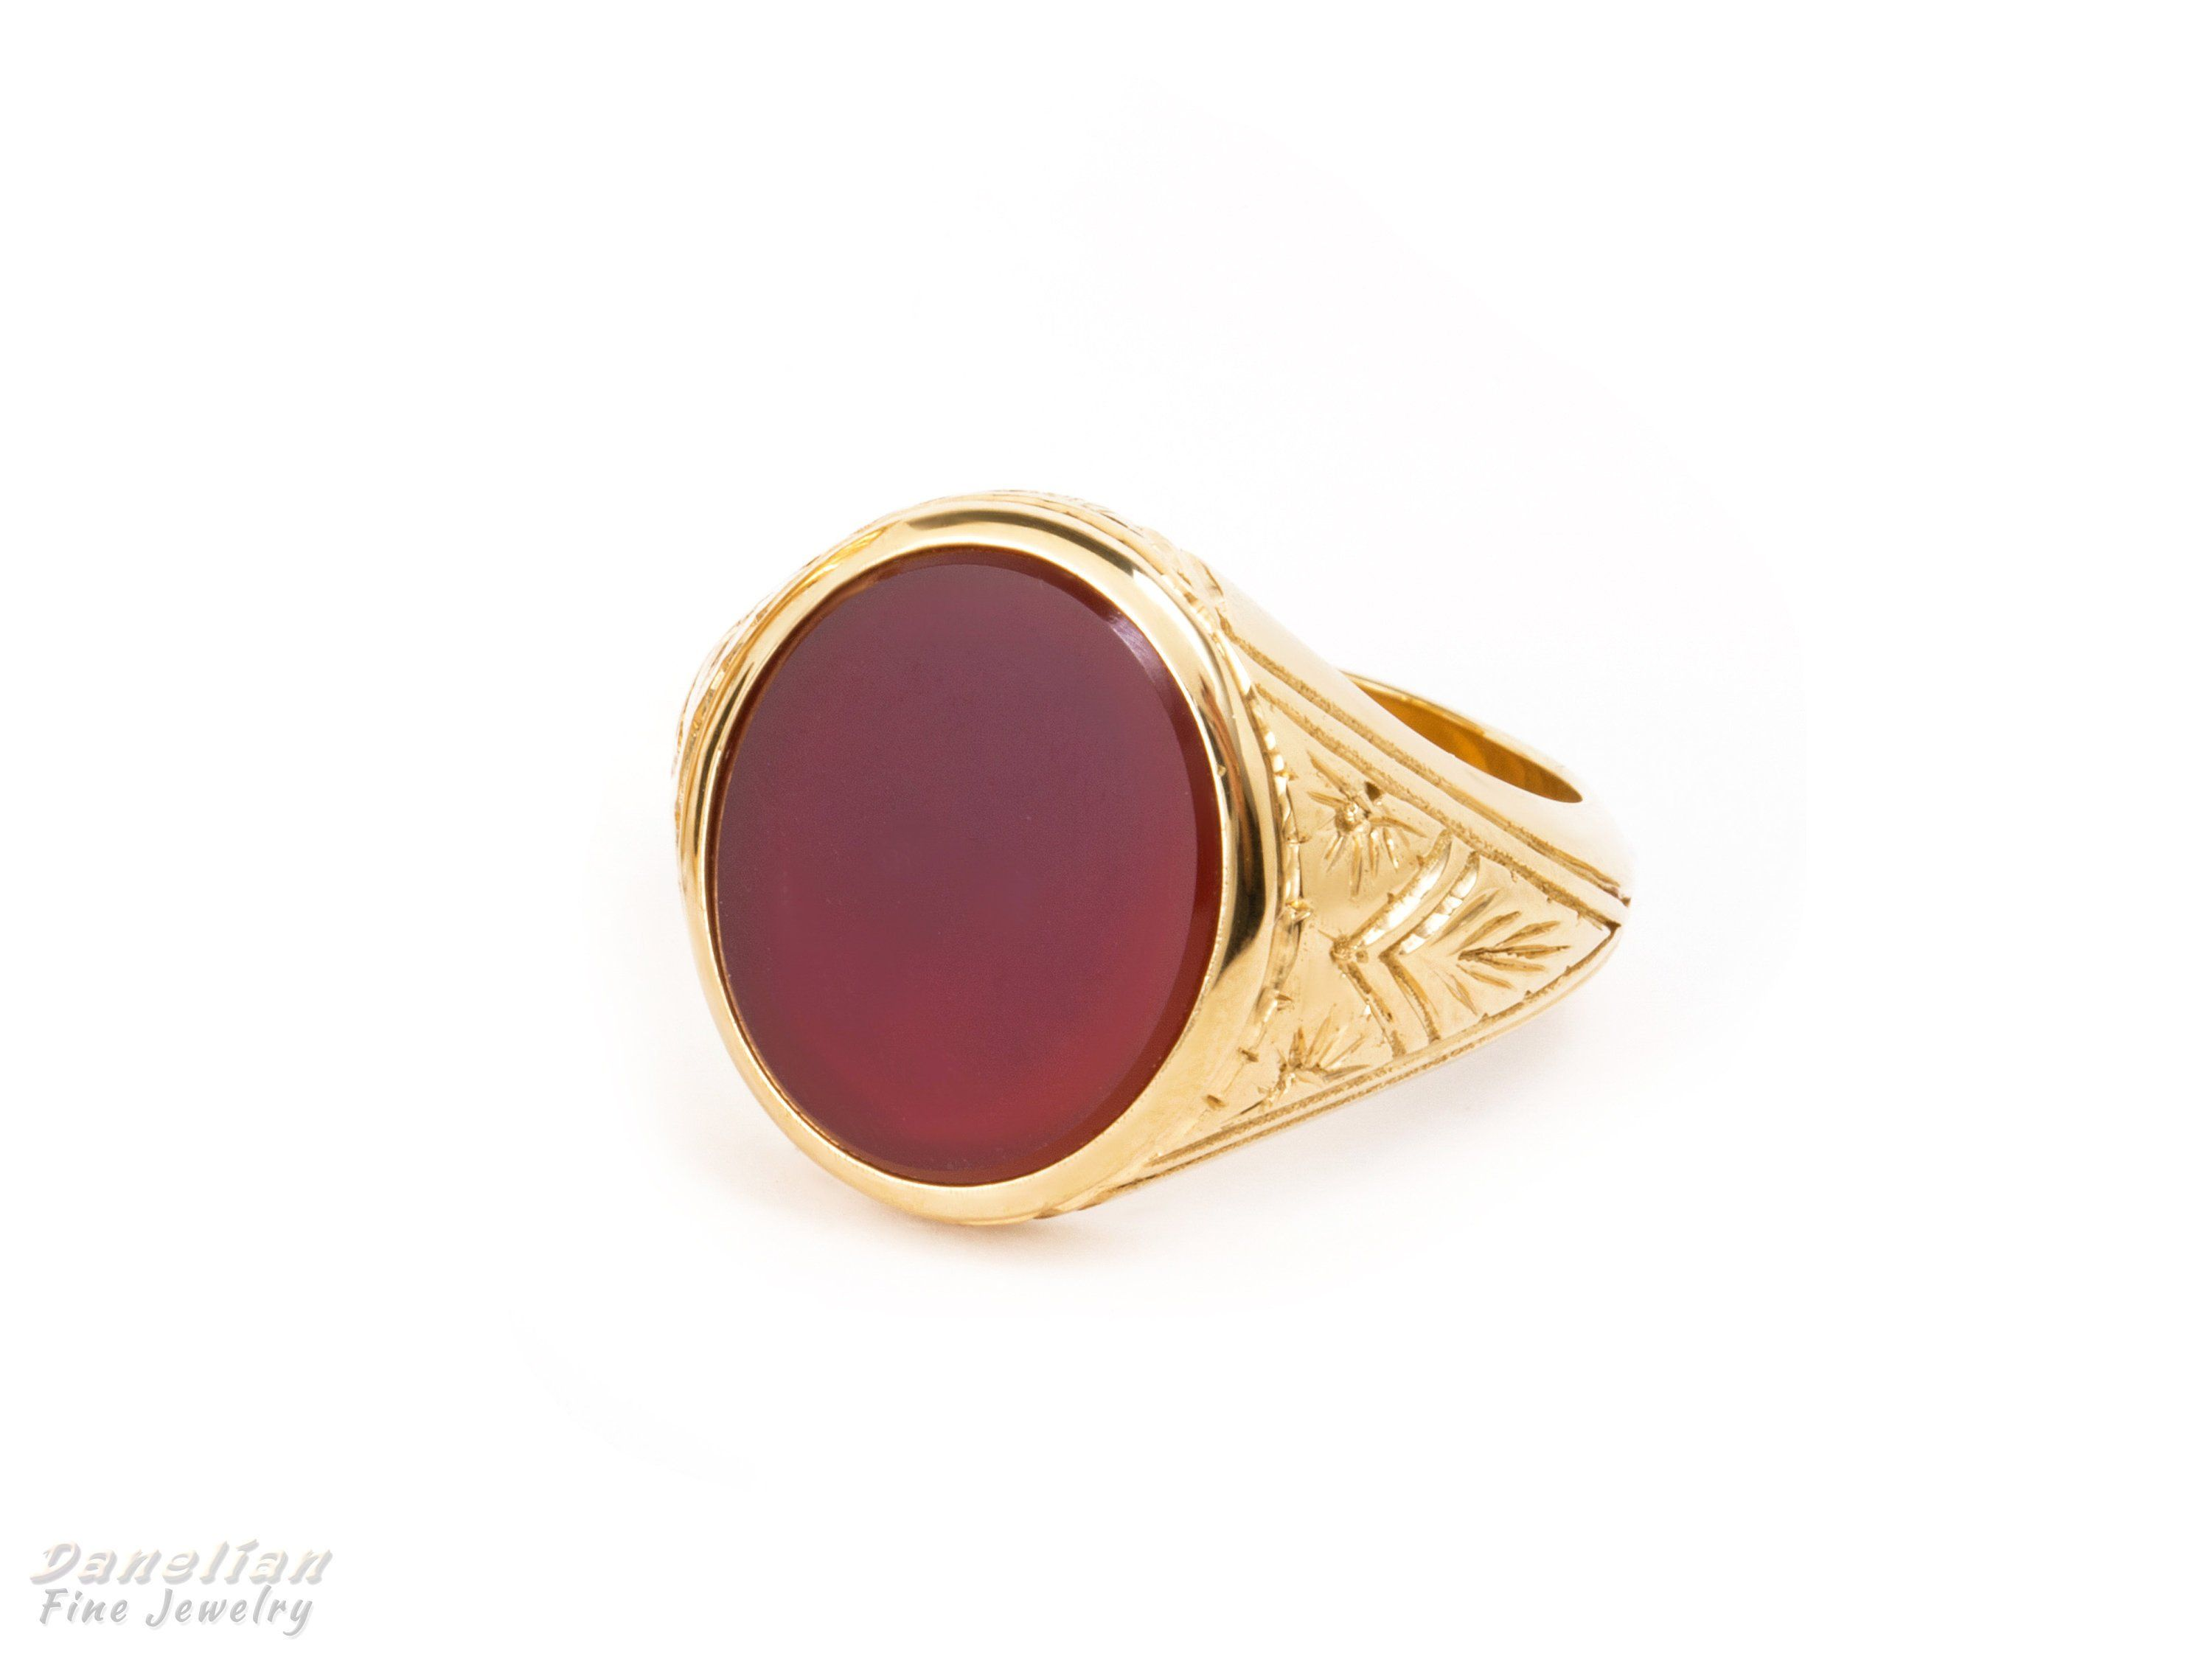 Mens Red Ruby Ring in 10K SOLID Fine Yellow GOLD with 2 Onyx Gemstone Accents